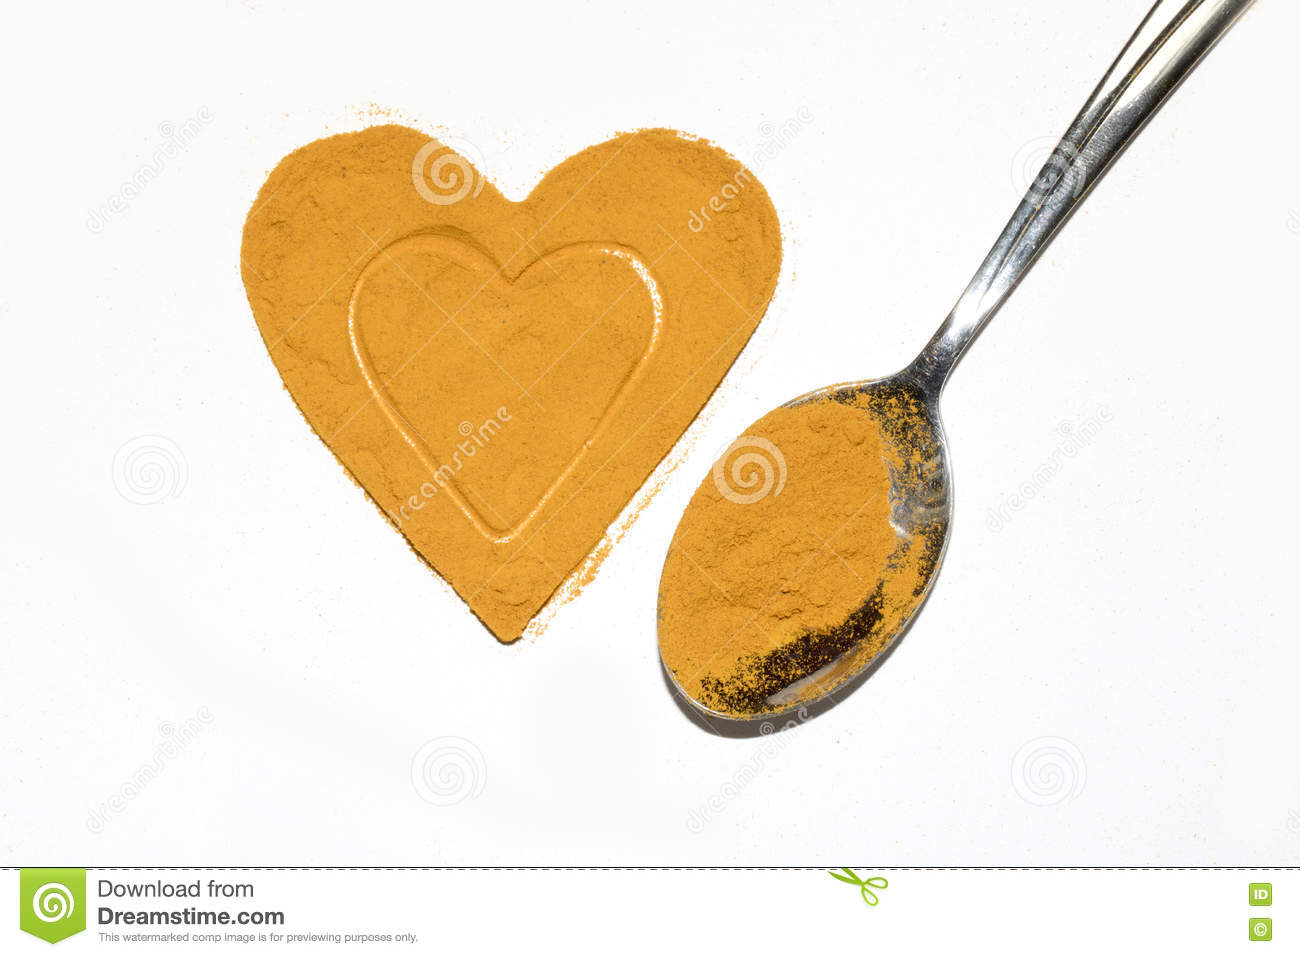 Turmeric Powder Heath Heart With Spoon Stock Photo - Image